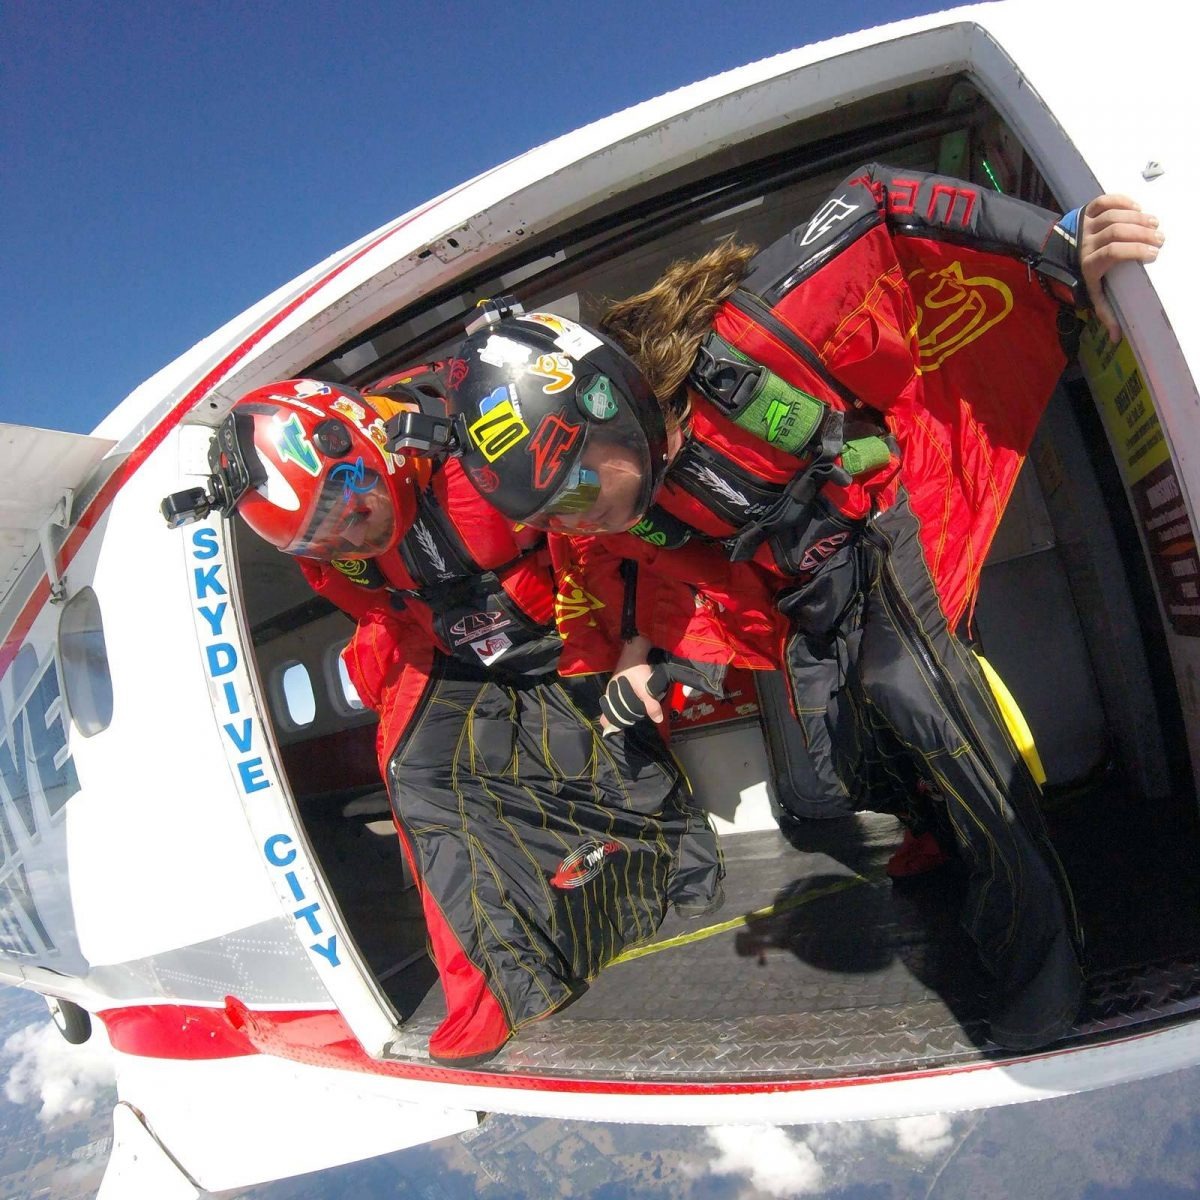 Wingsuiting jumpers getting ready to exit Skydive City airplanes.